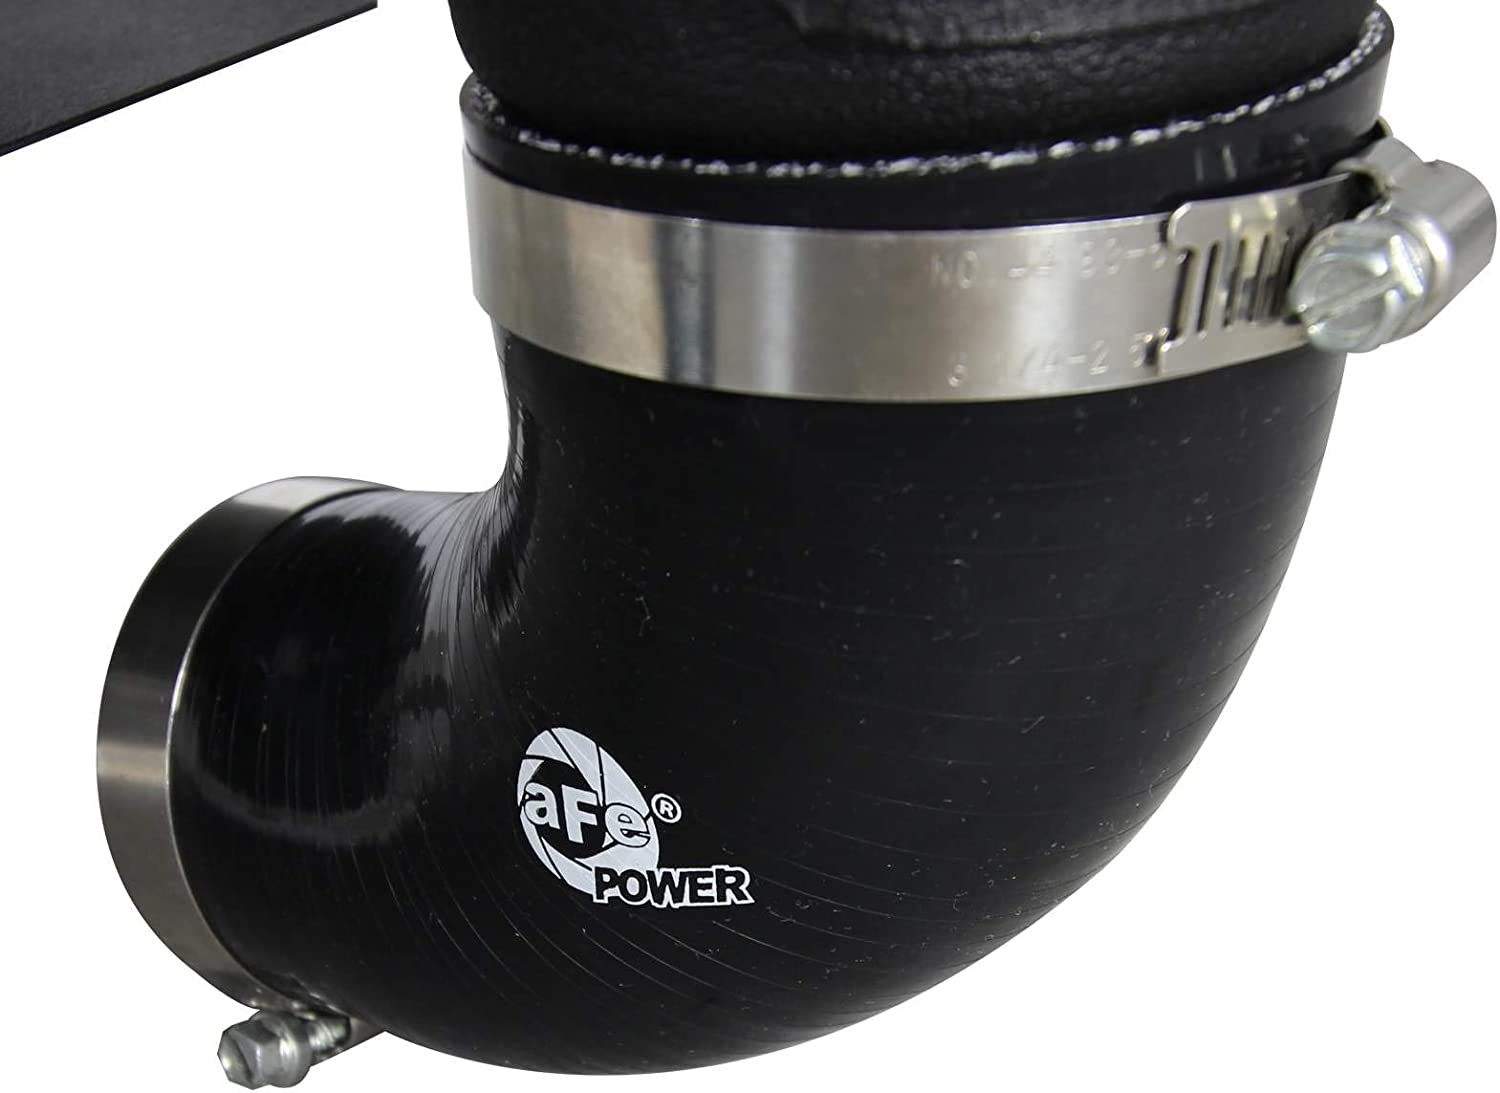 aFe Power 51-12512 Magnum FORCE Stage-2 Pro DRY S Intake System for Fiat 500